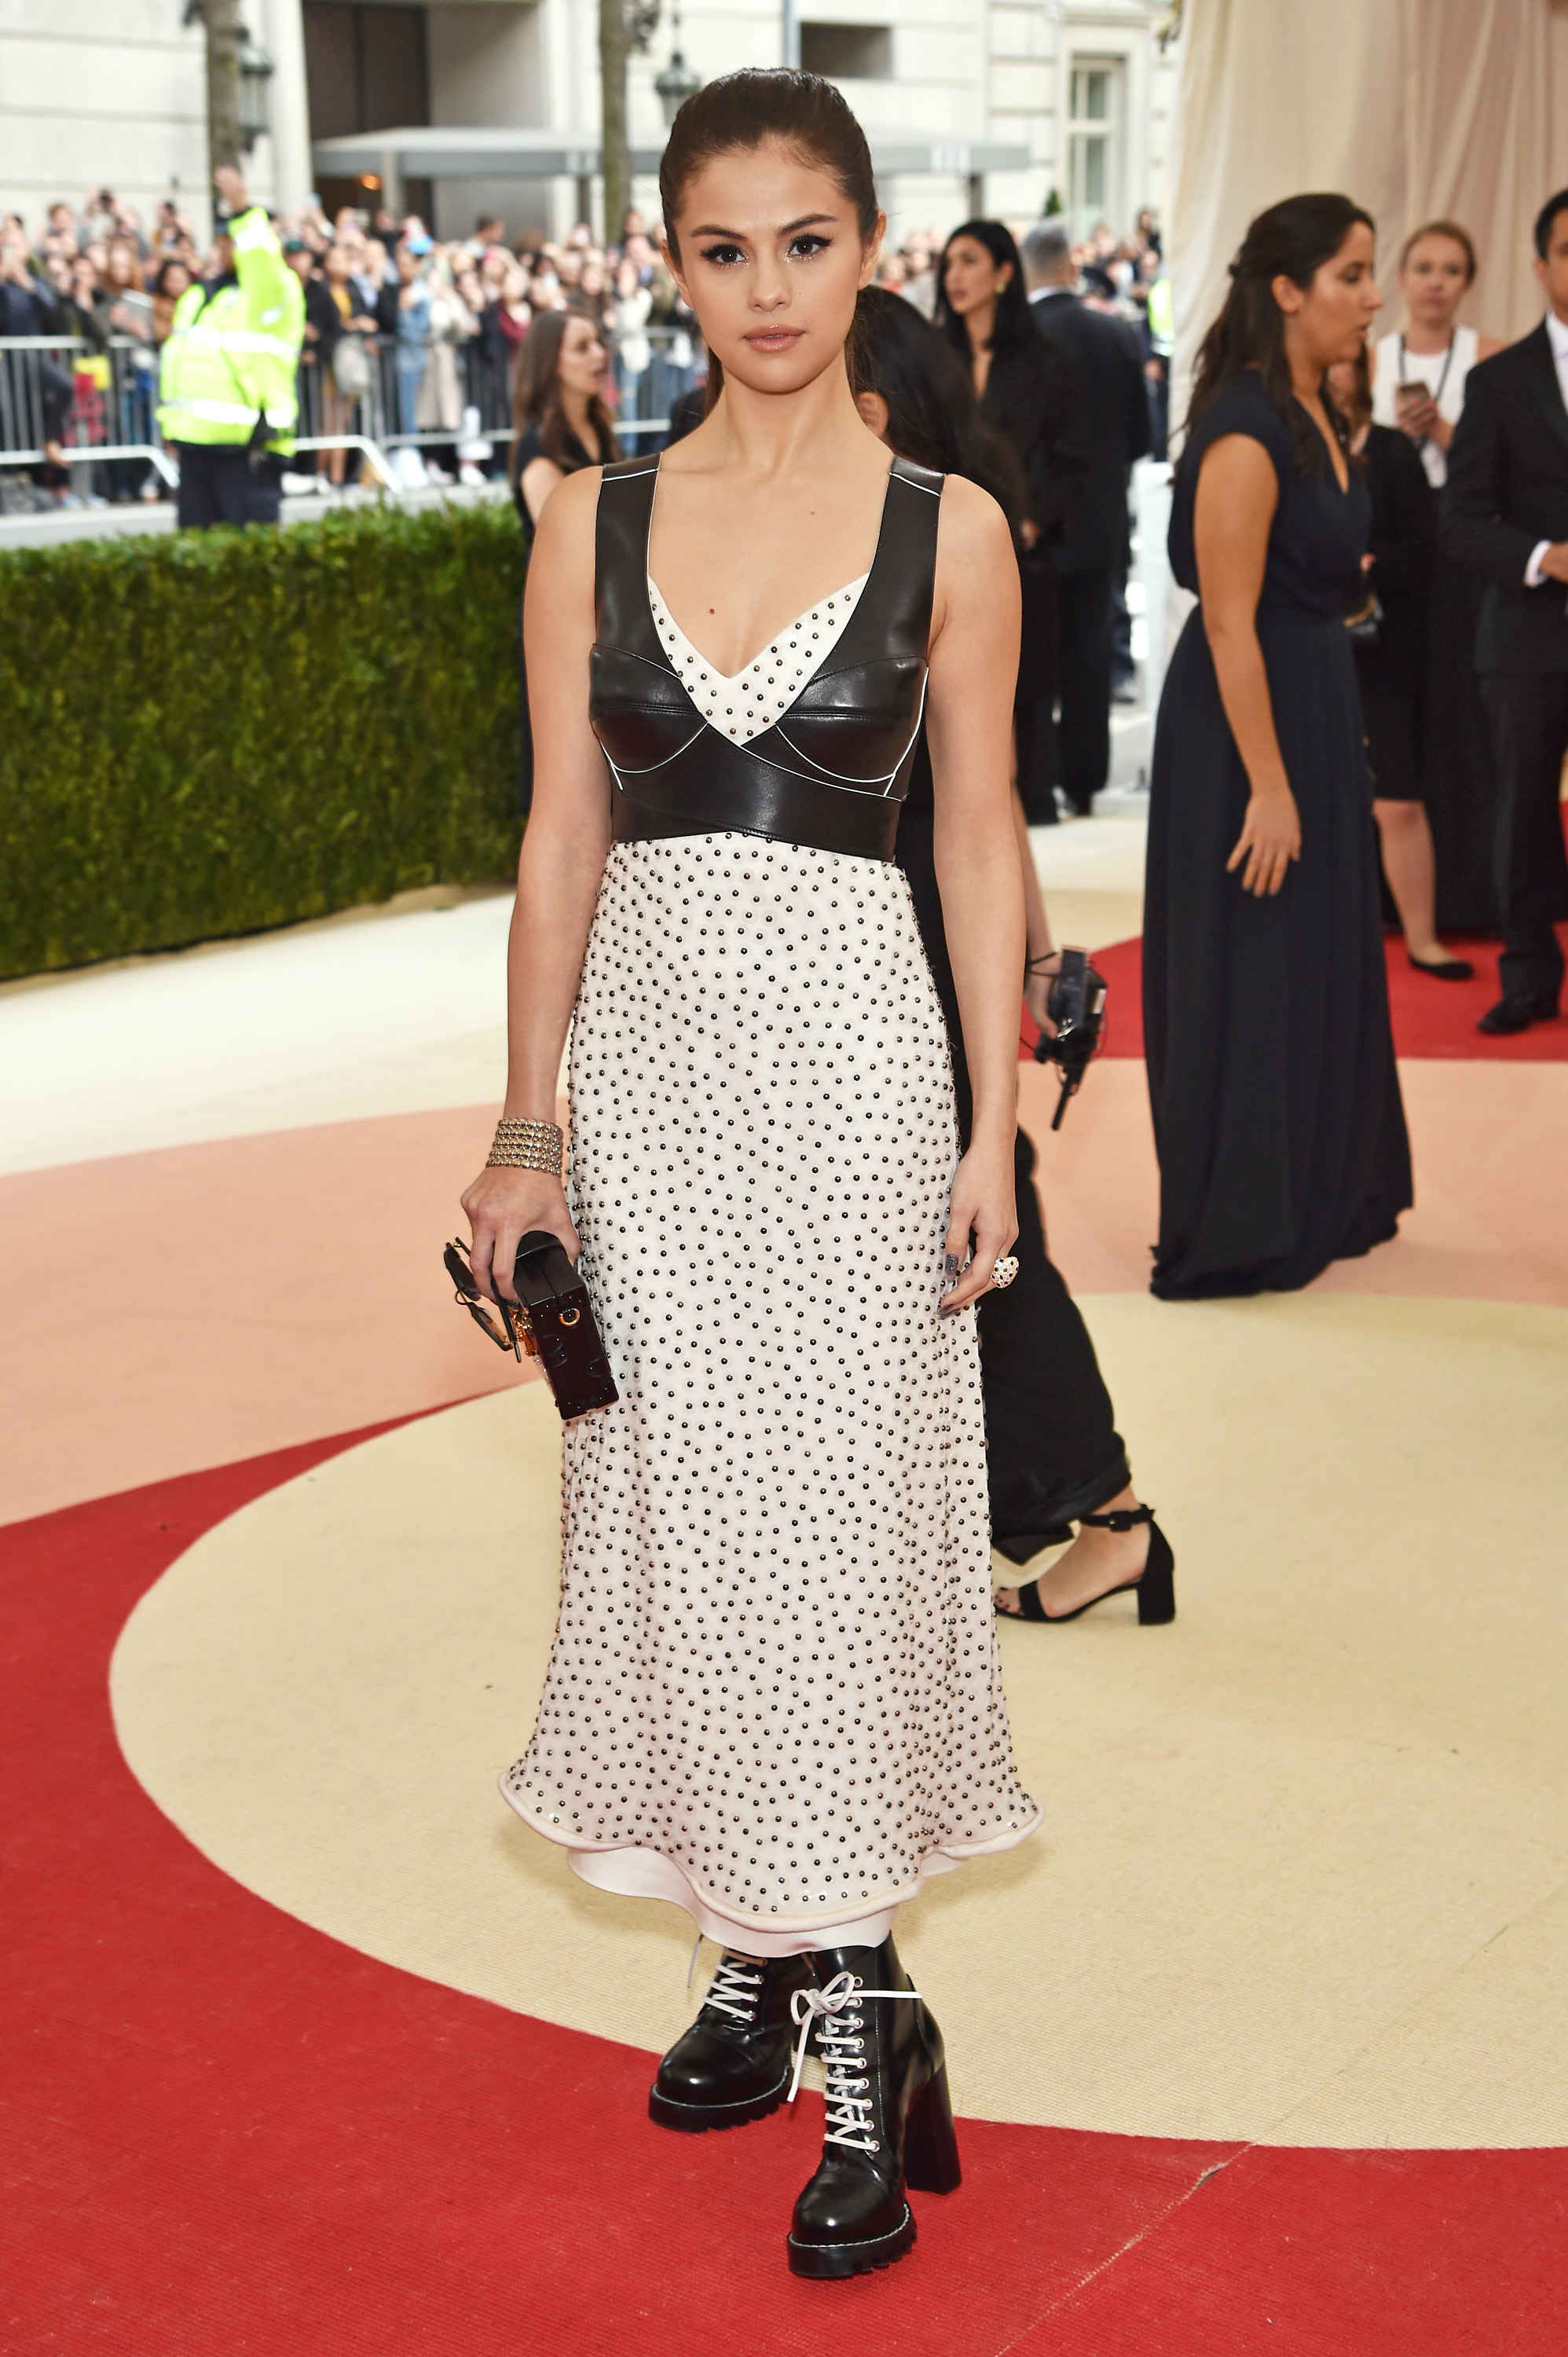 Selena Gomez in Louis Vuitton, something like peasant meets grunge.